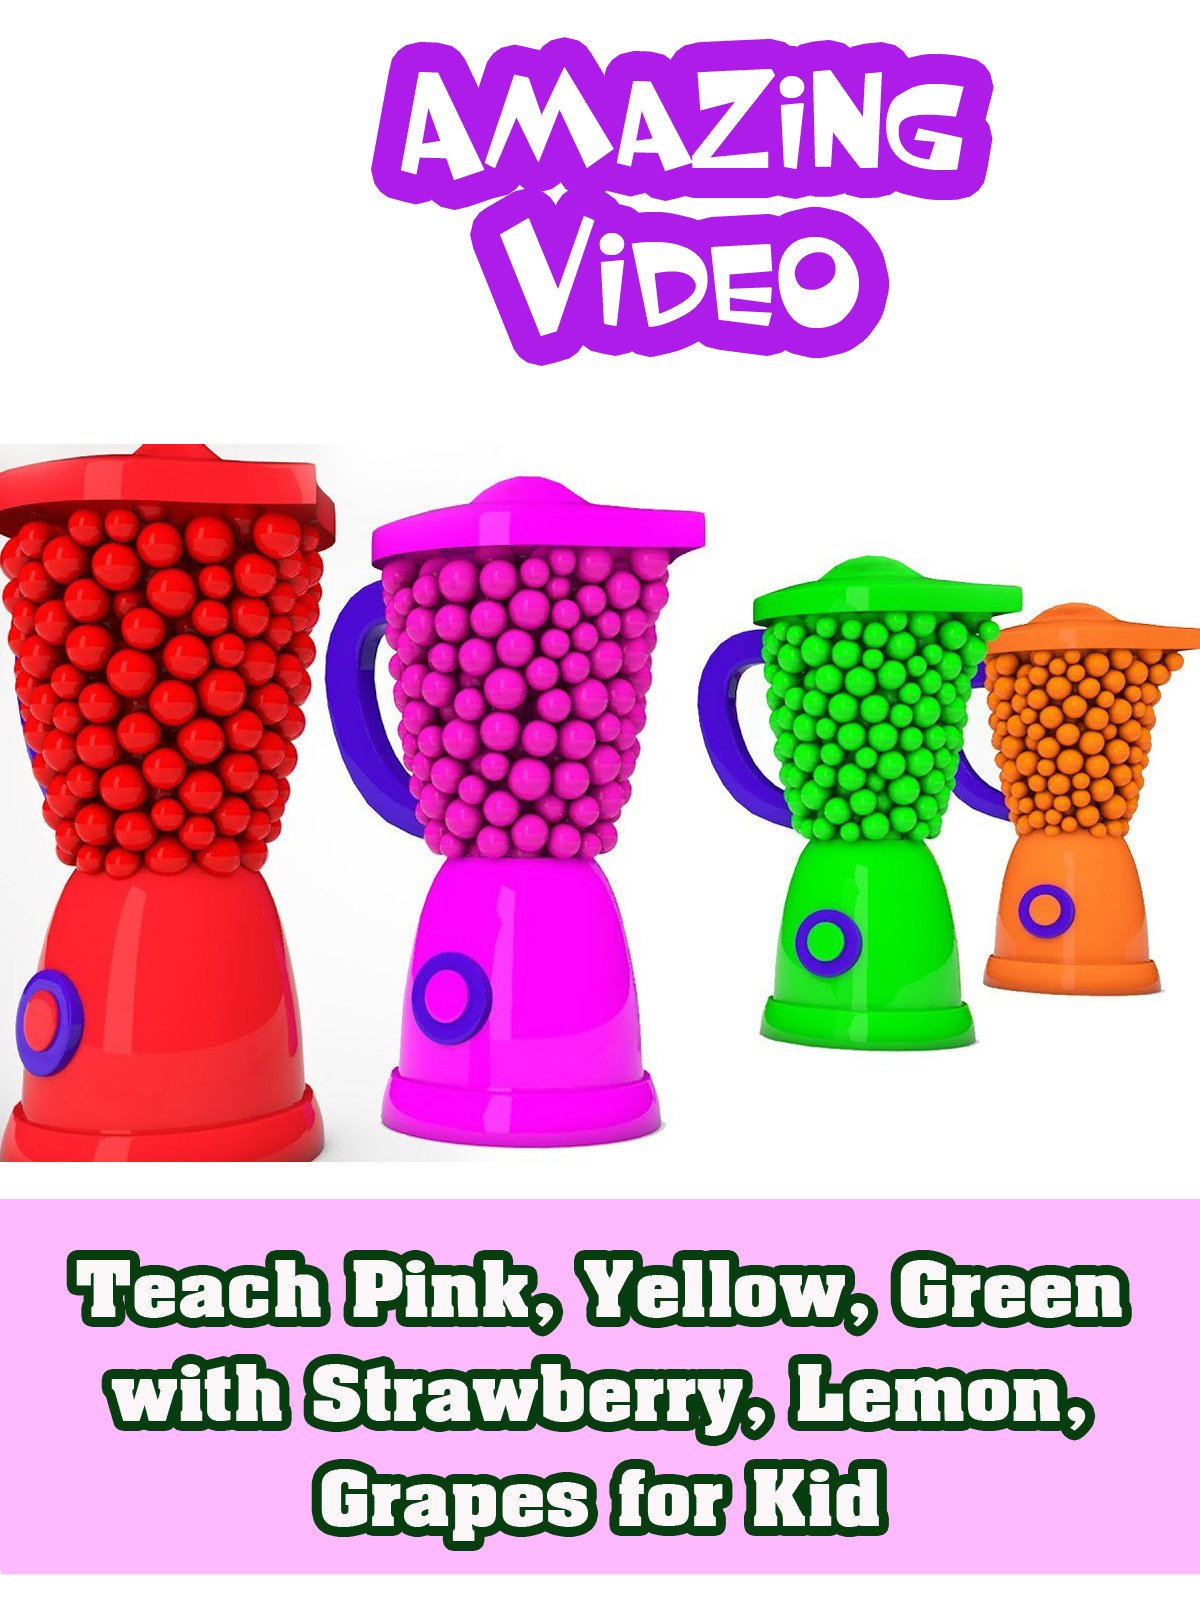 Teach Pink, Yellow, Green with Strawberry, Lemon, Grapes for Kid